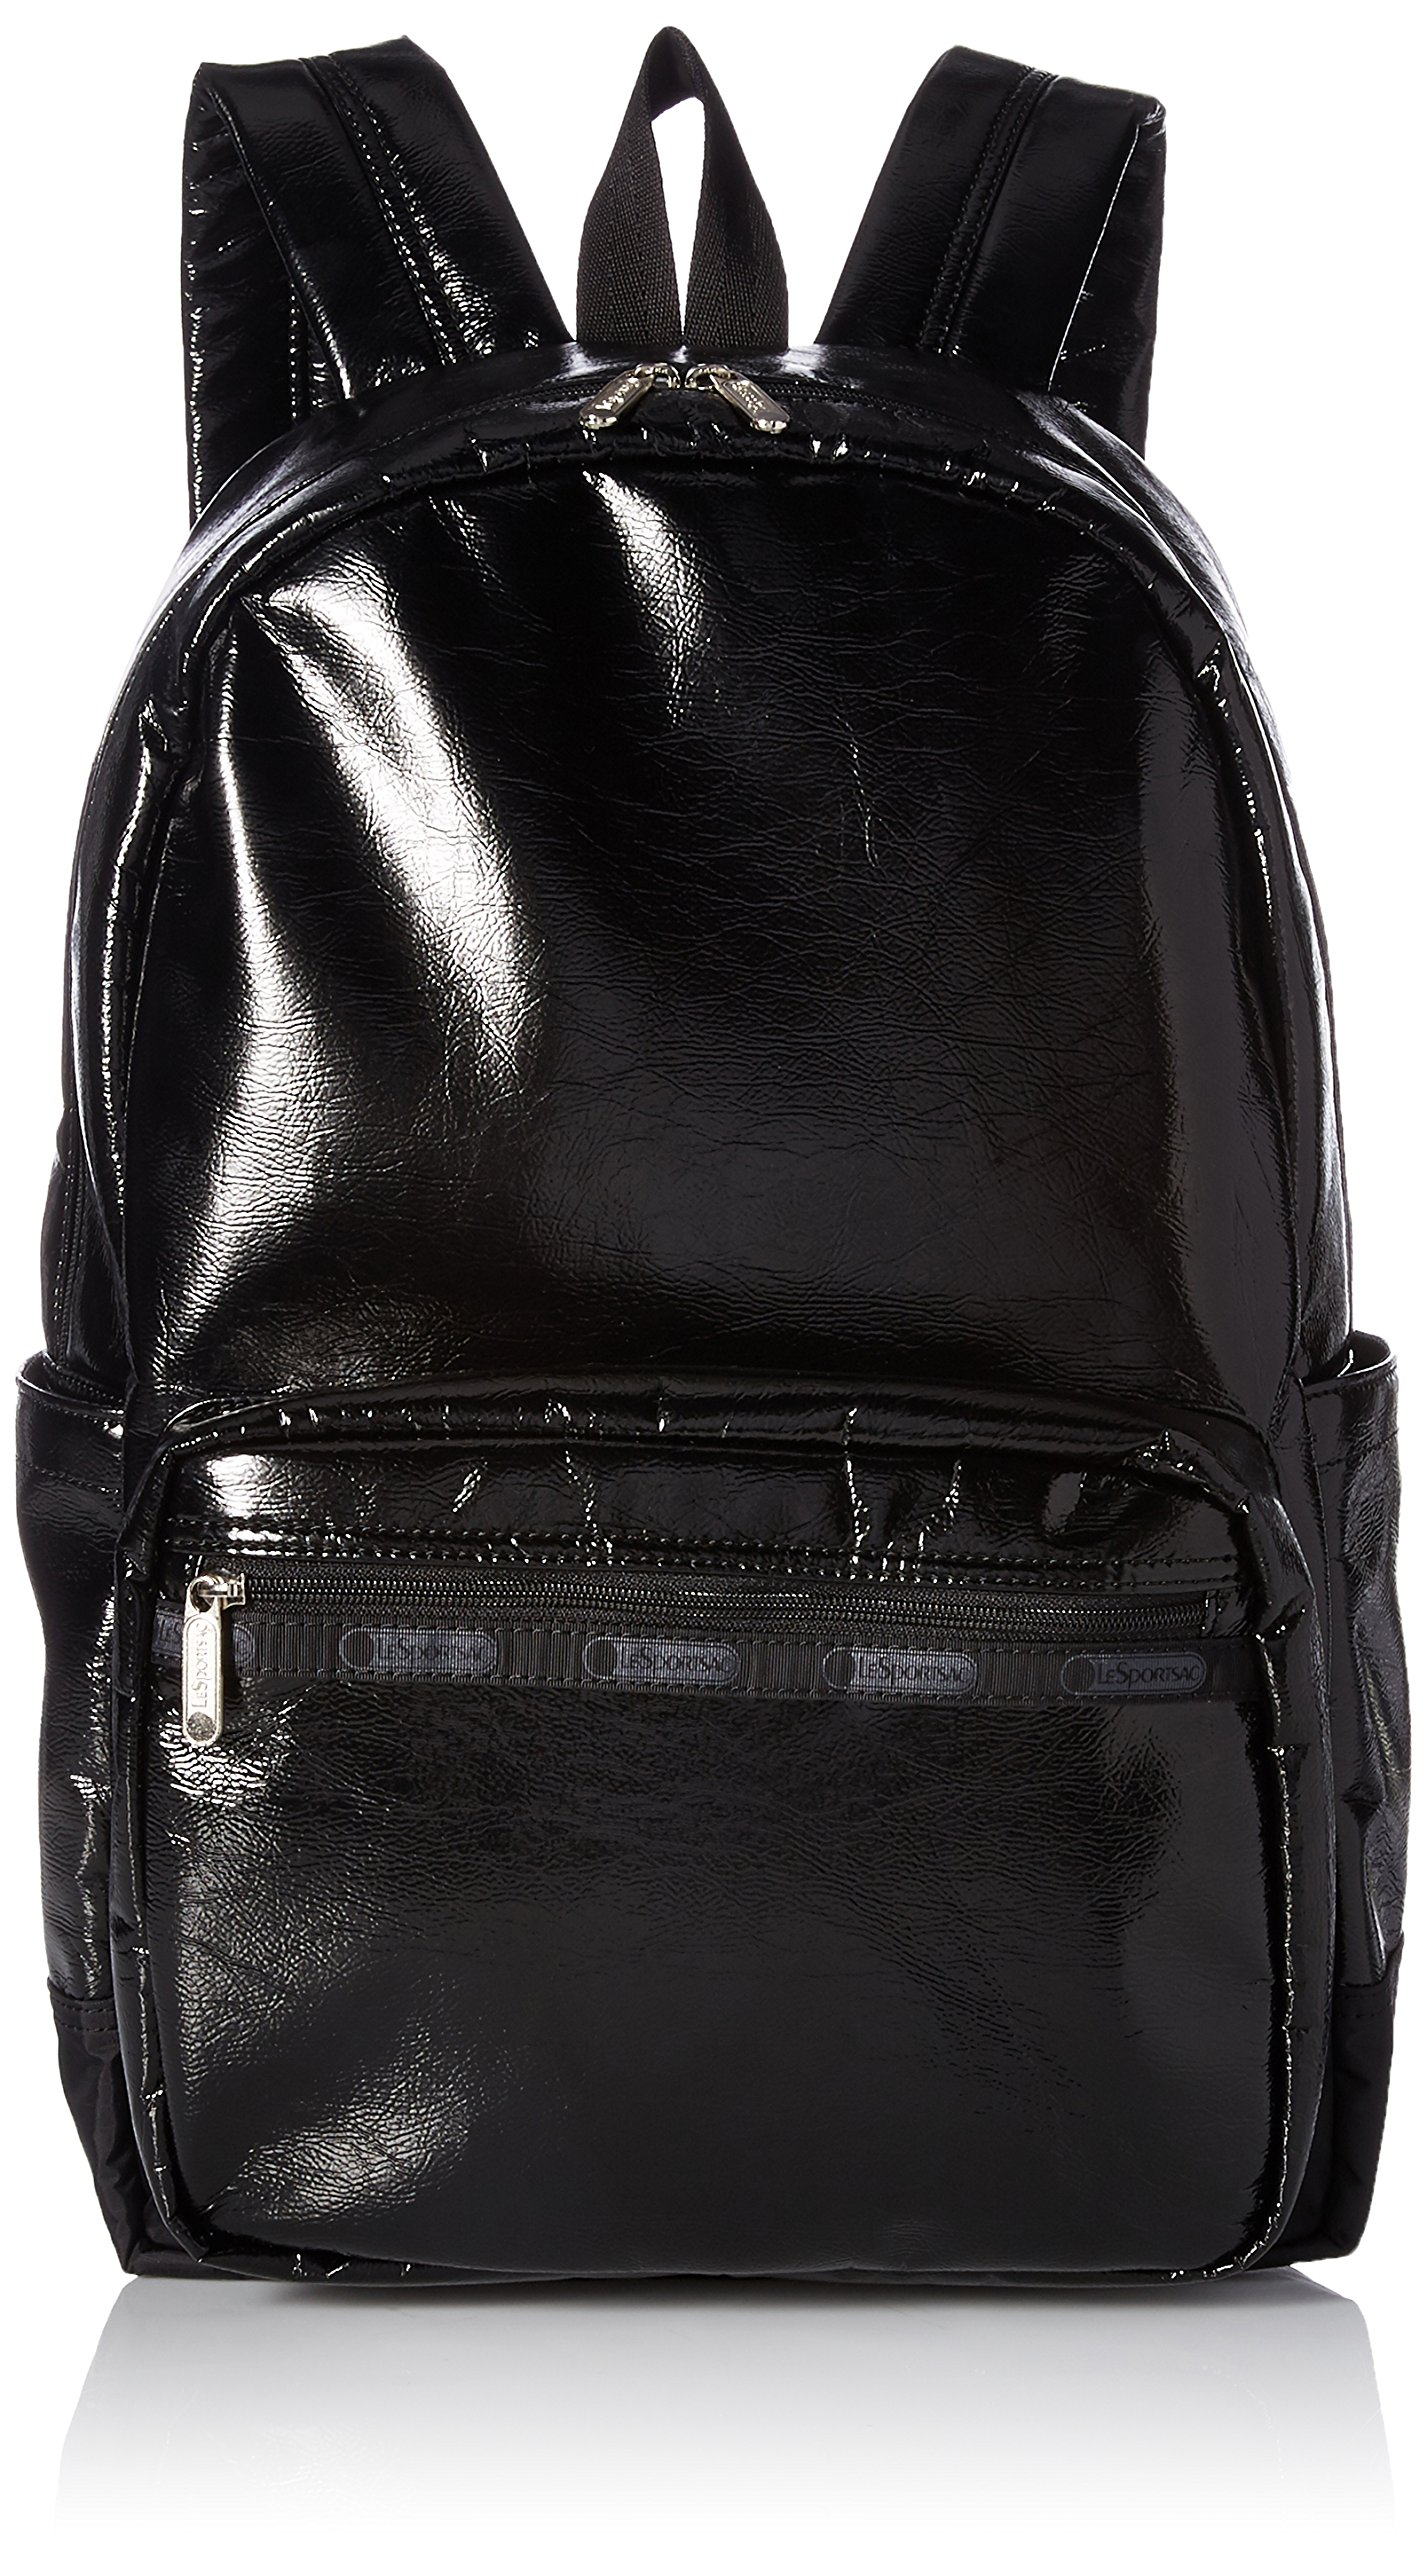 LeSportsac Women's Classic Essential Backpack, Black Crinkle Patent